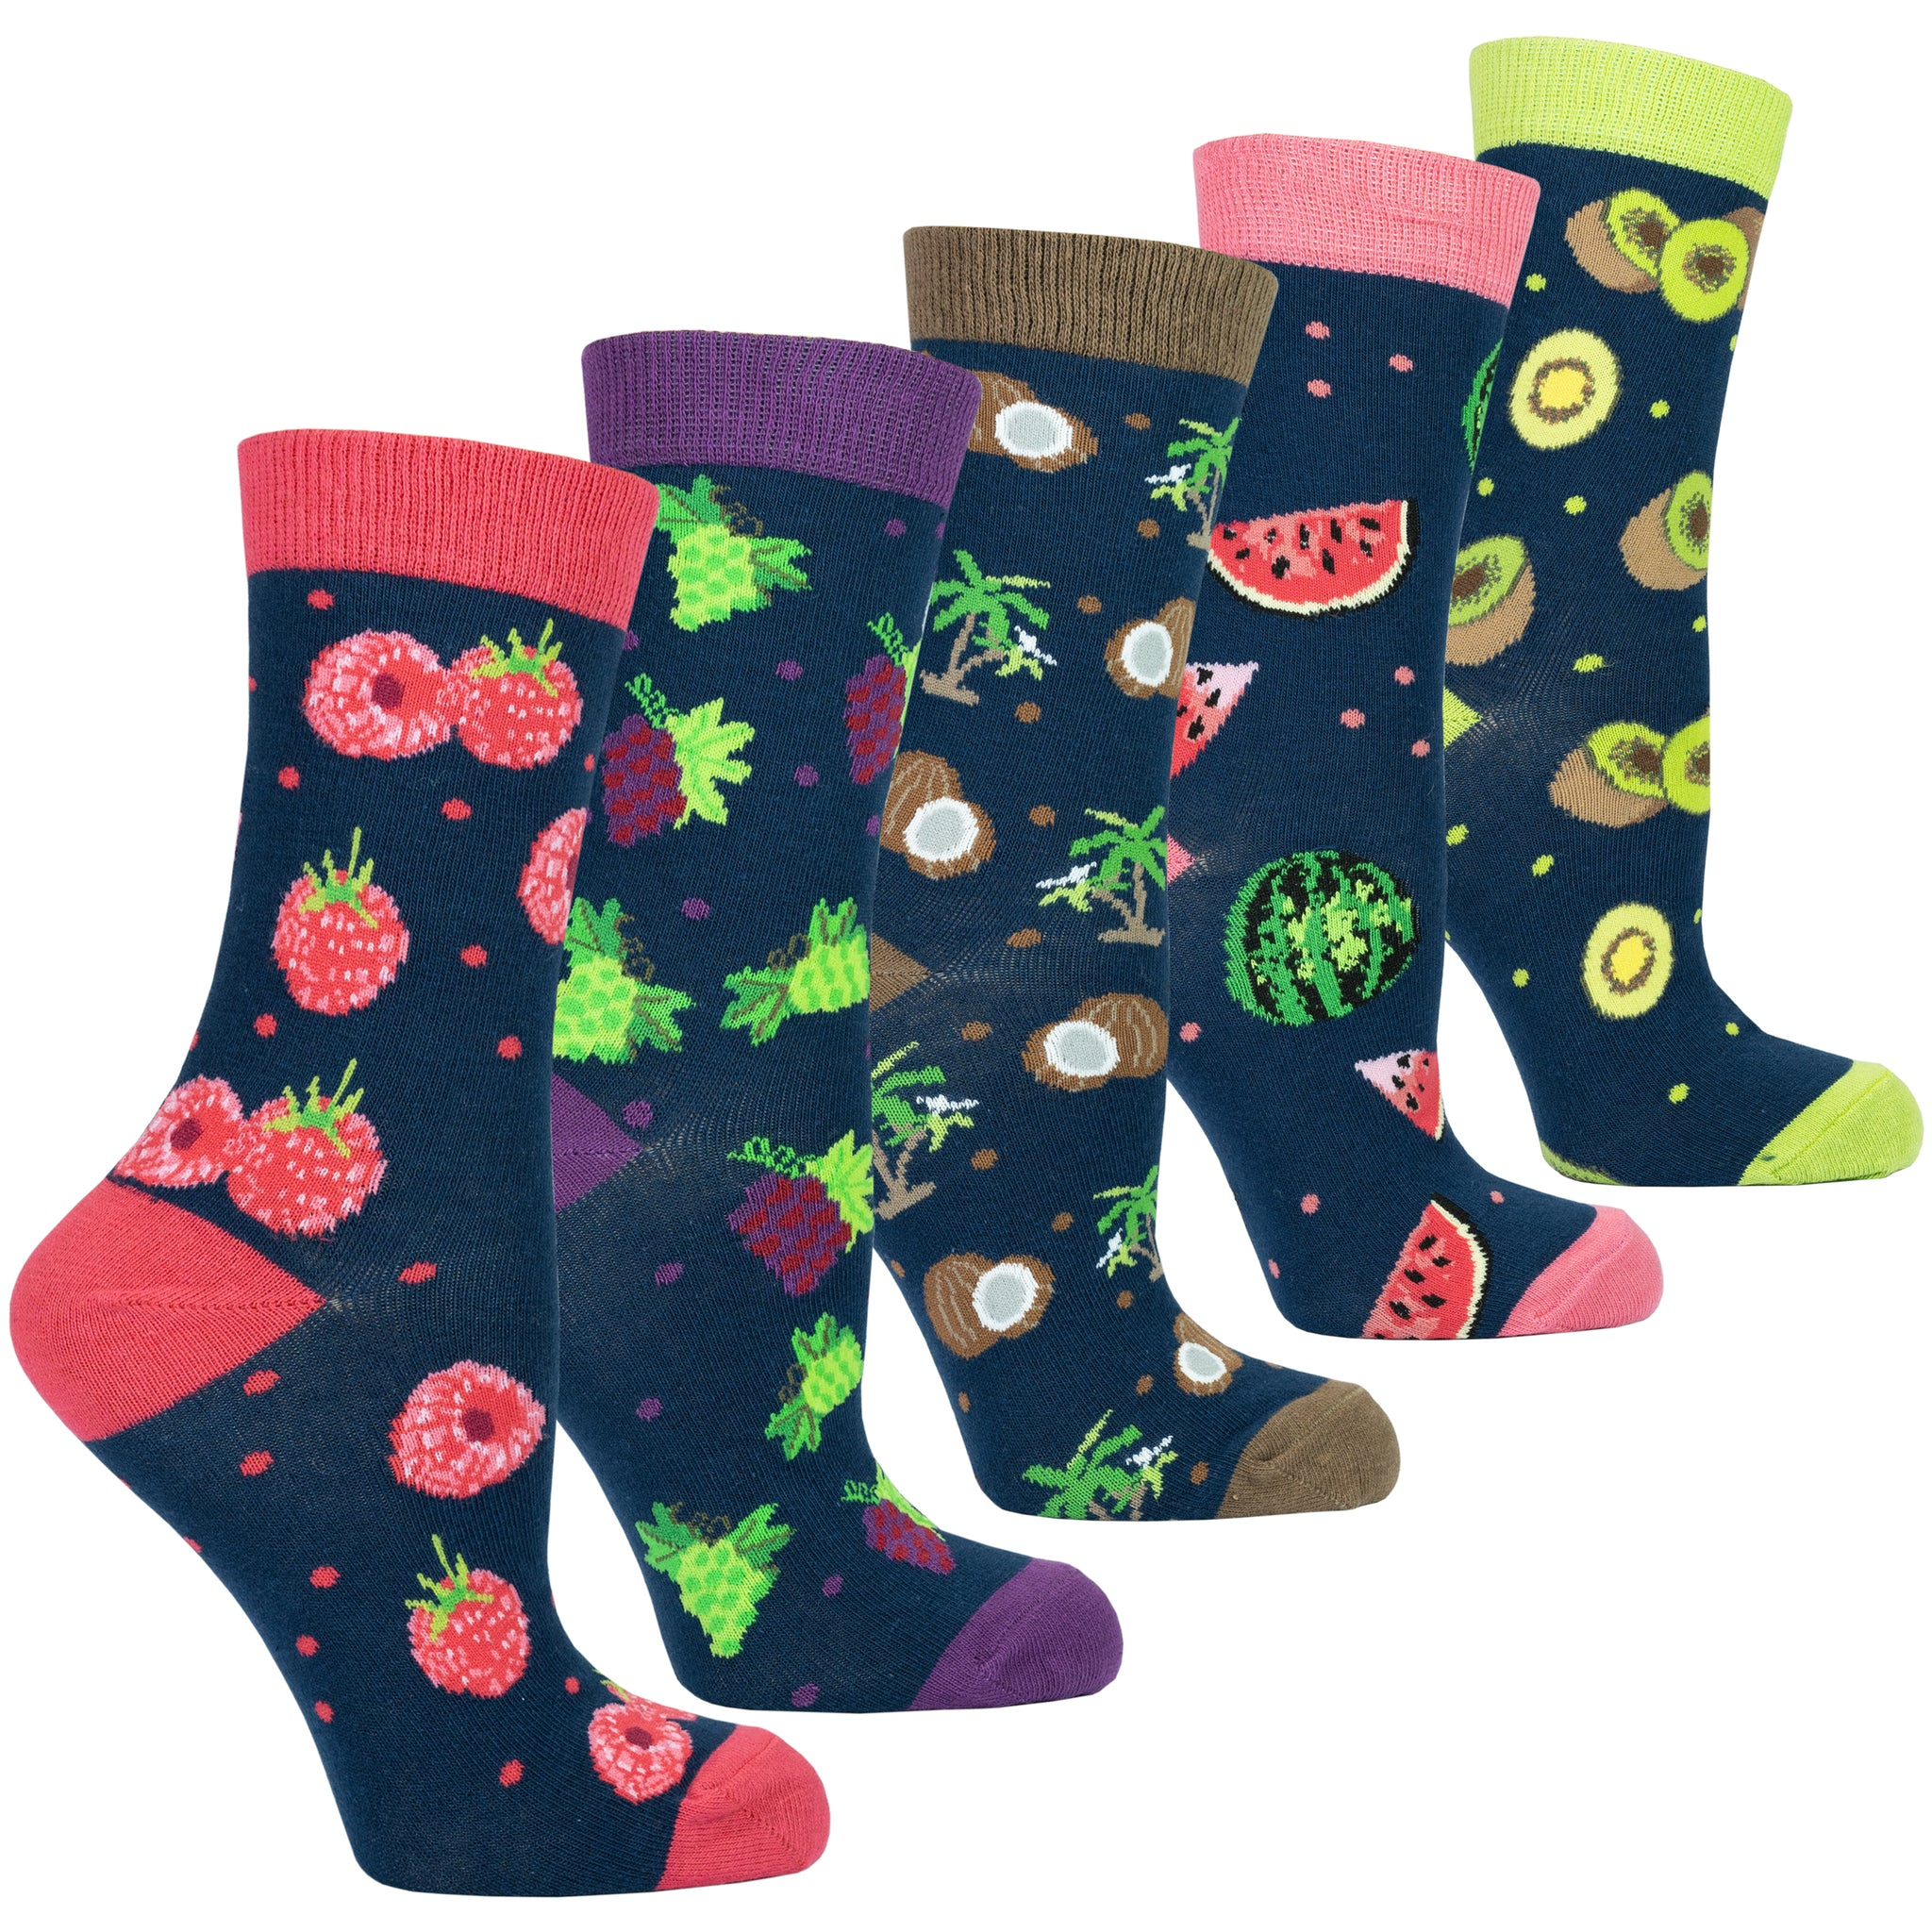 Women's Delightful Fruits Socks Set